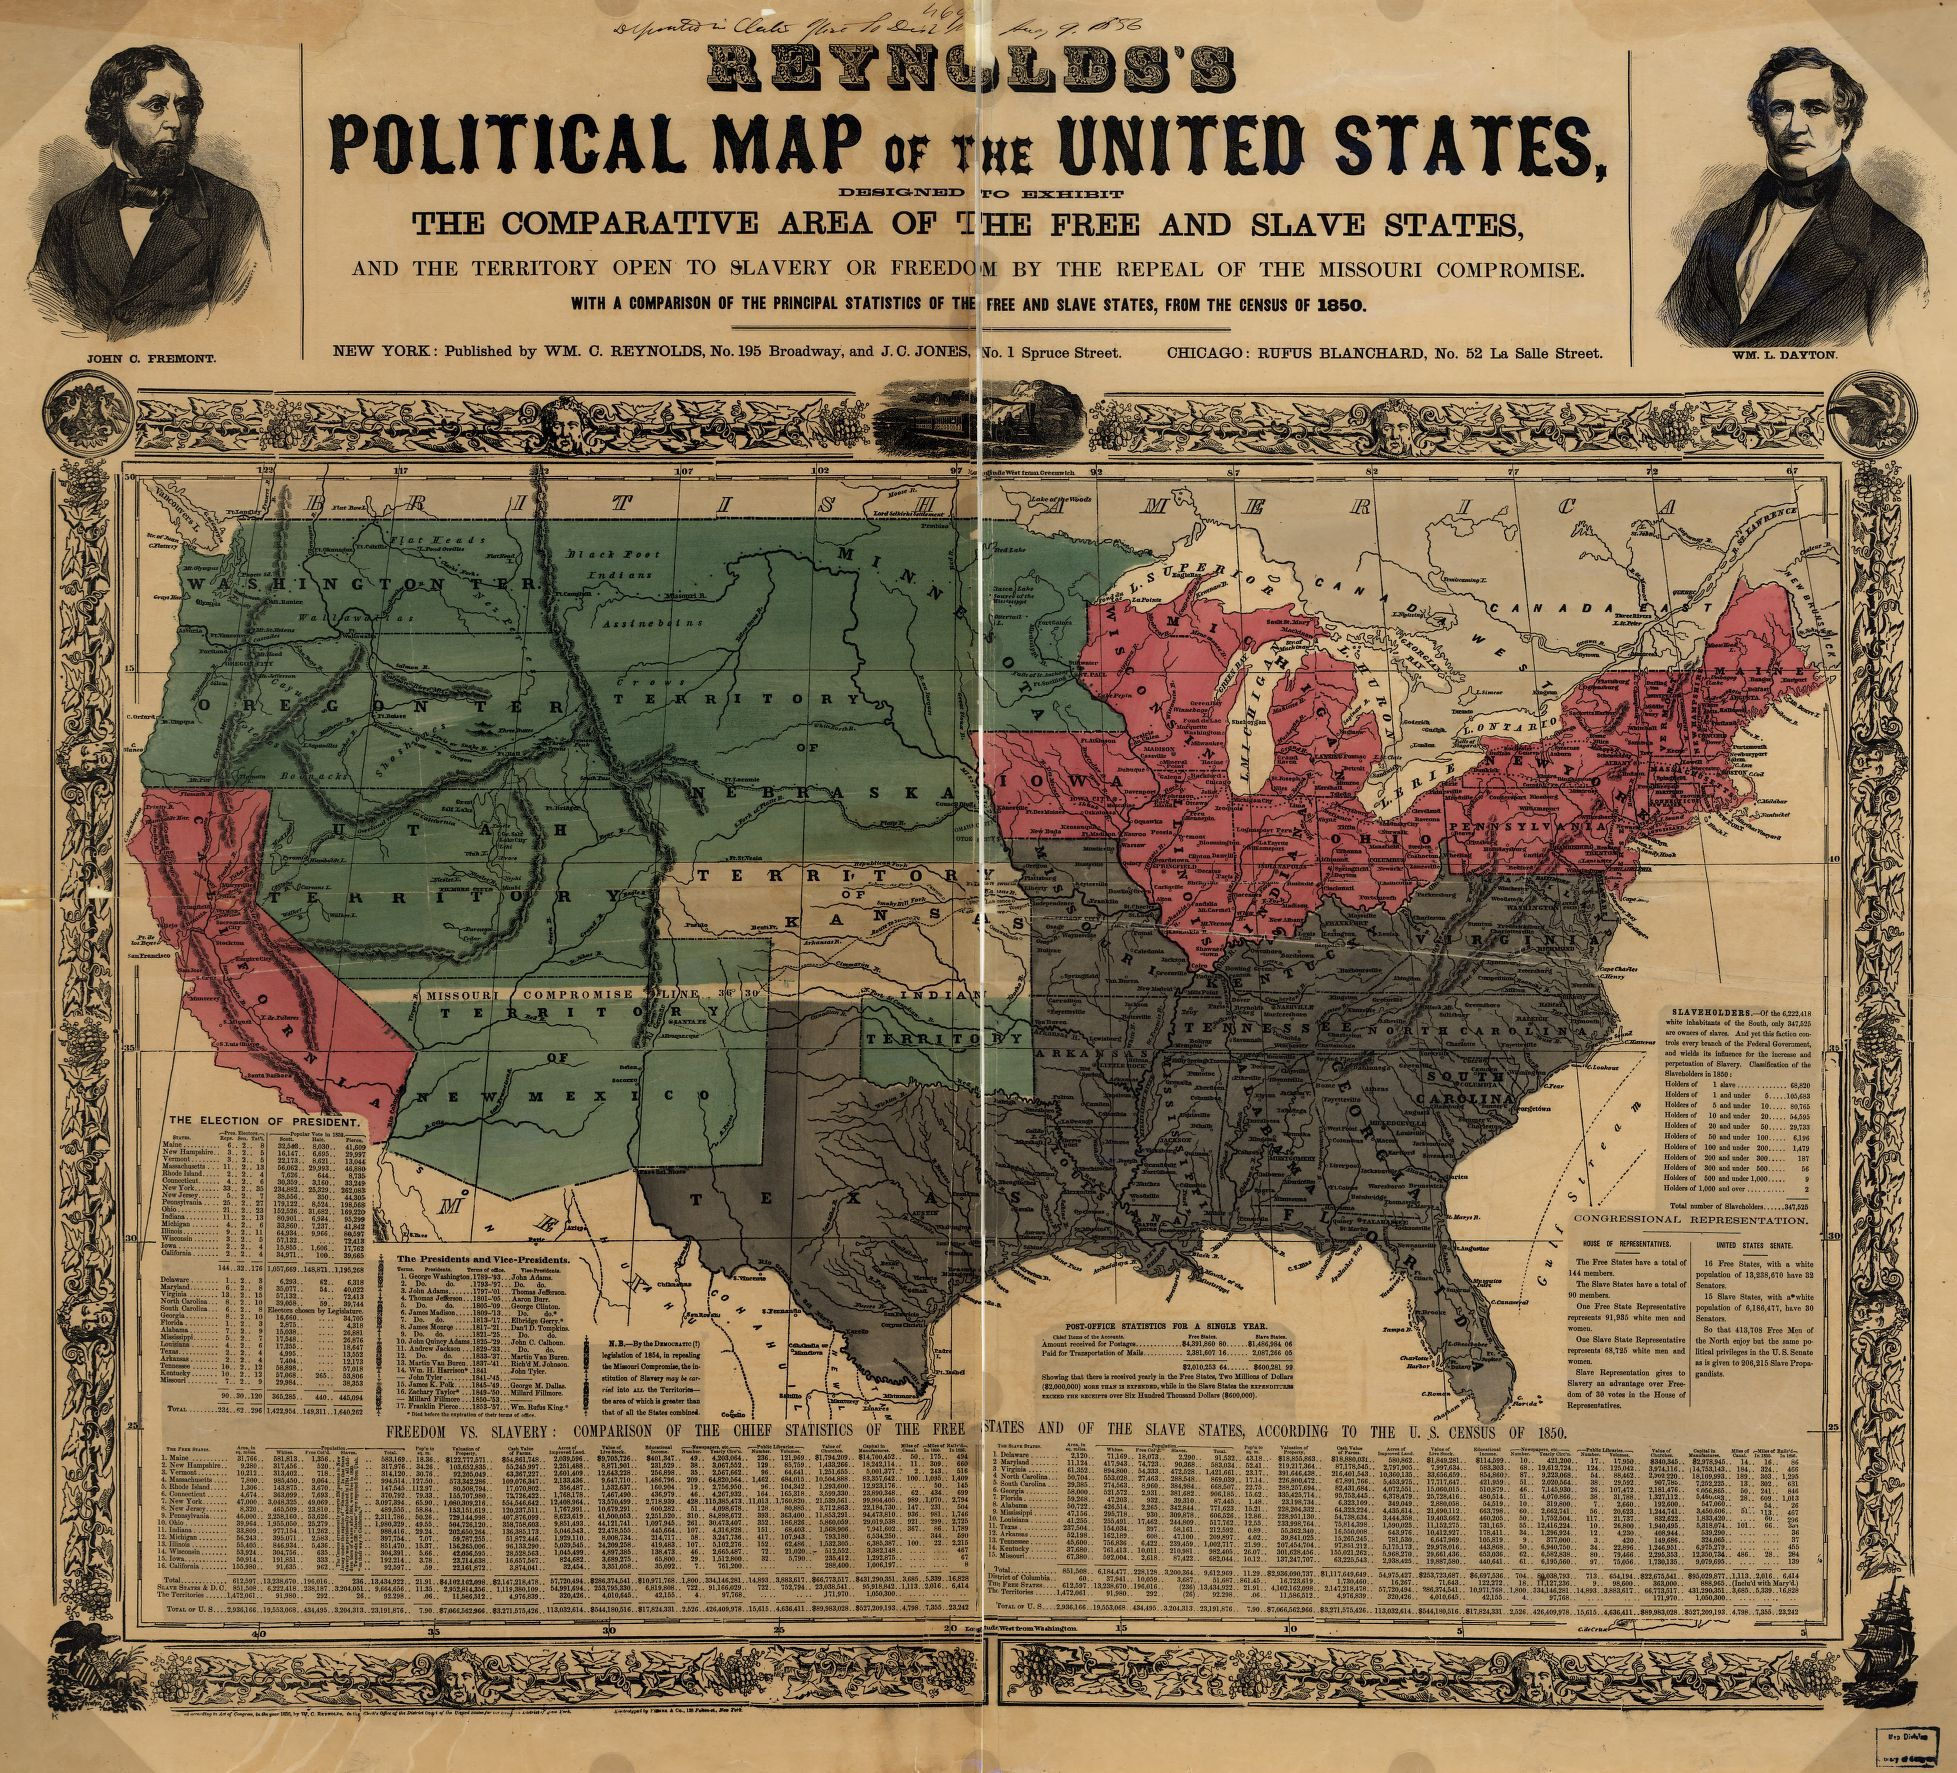 Map Usa Louisiana%0A Jan Kansas enters the Union as a free state  This      map shows slave  states  gray   free states  pink   U  territories  green   and Kansas in  center